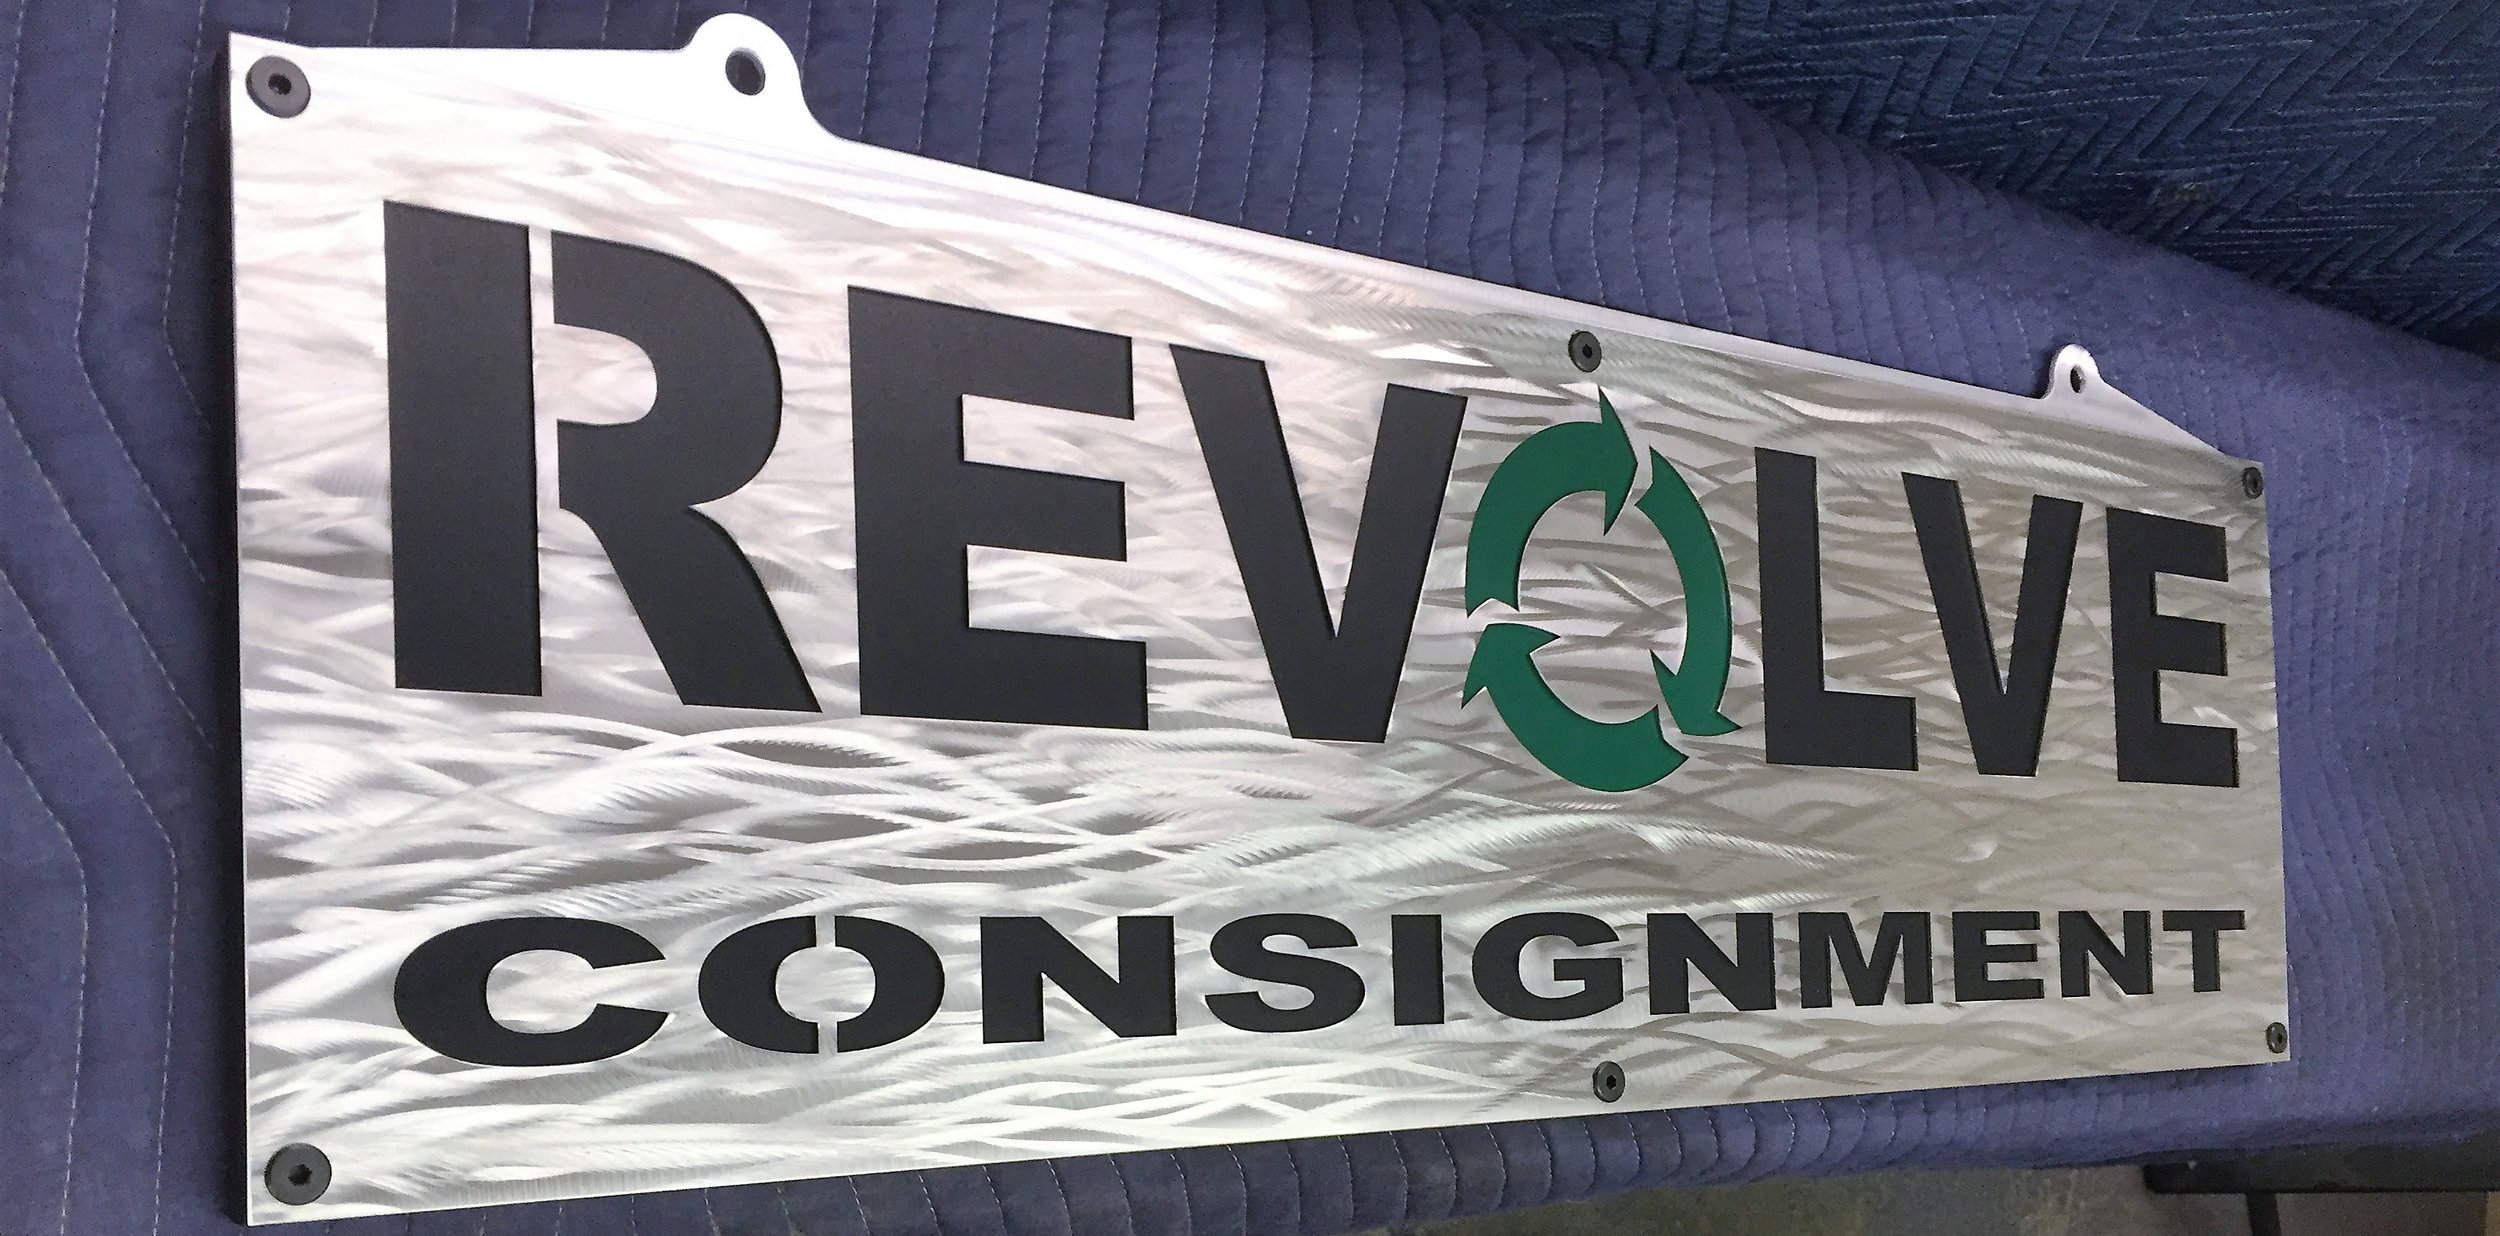 Revolve Consignment Signage.jpg